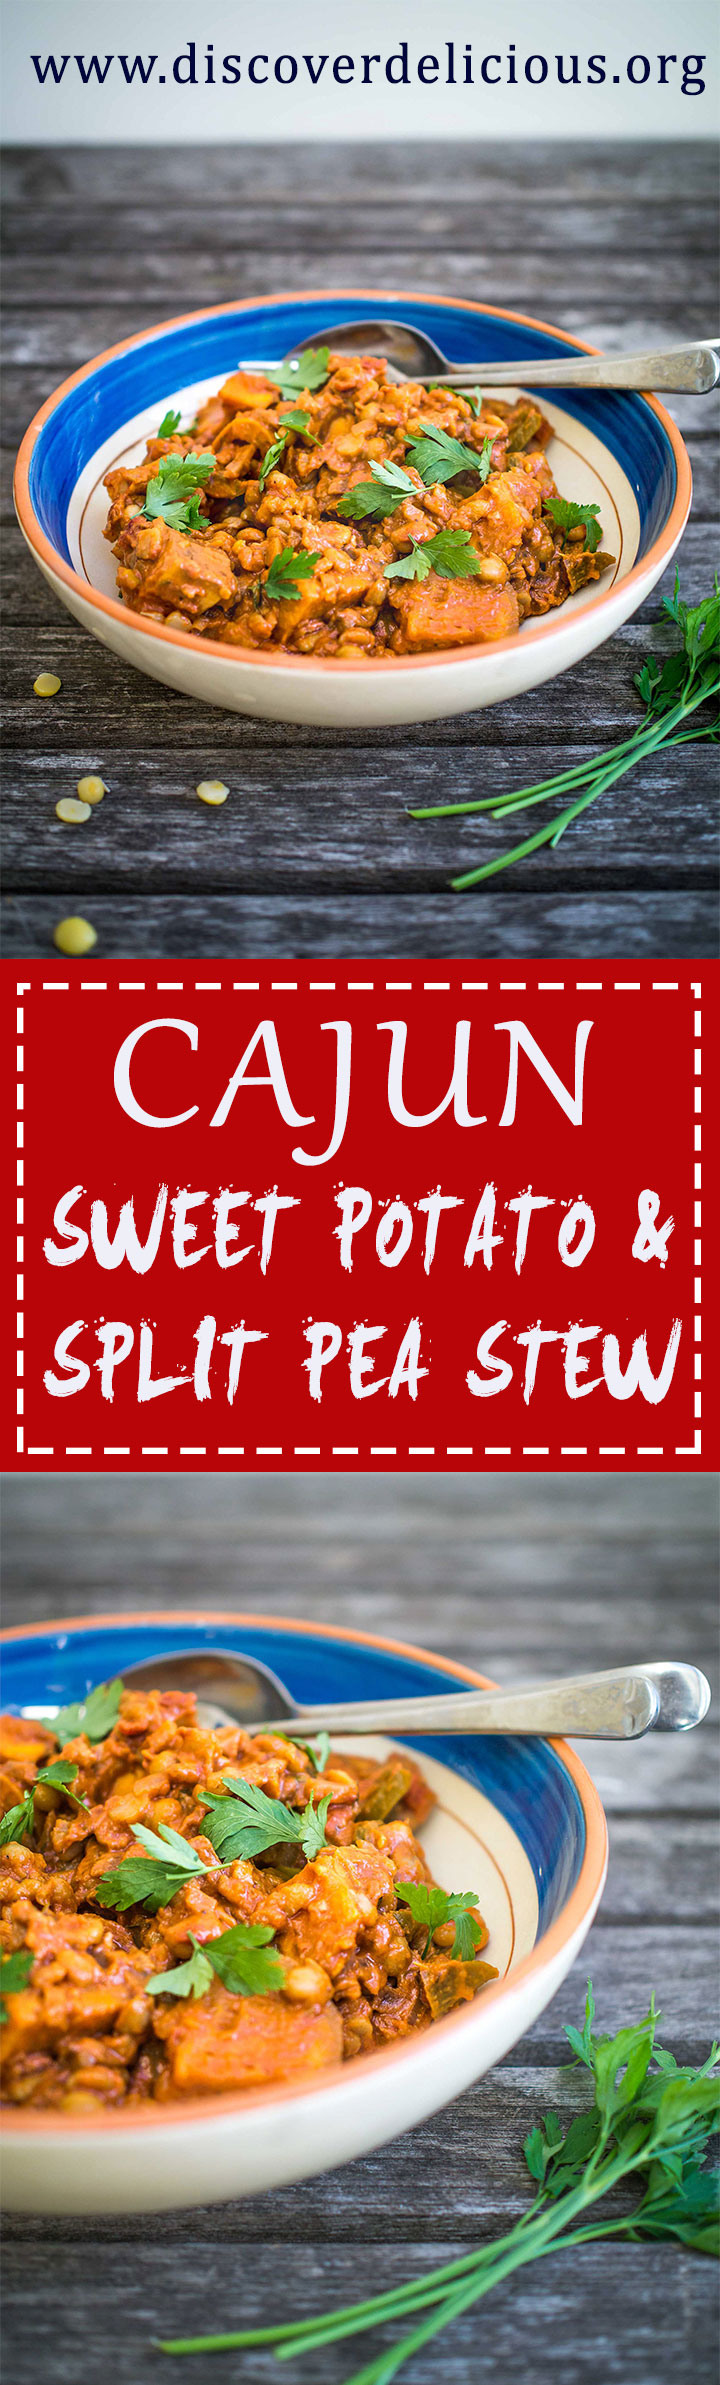 Cajun Sweet Potato Split Pea Stew | www.discoverdelicious.org | Discover Delicious | Vegan Food